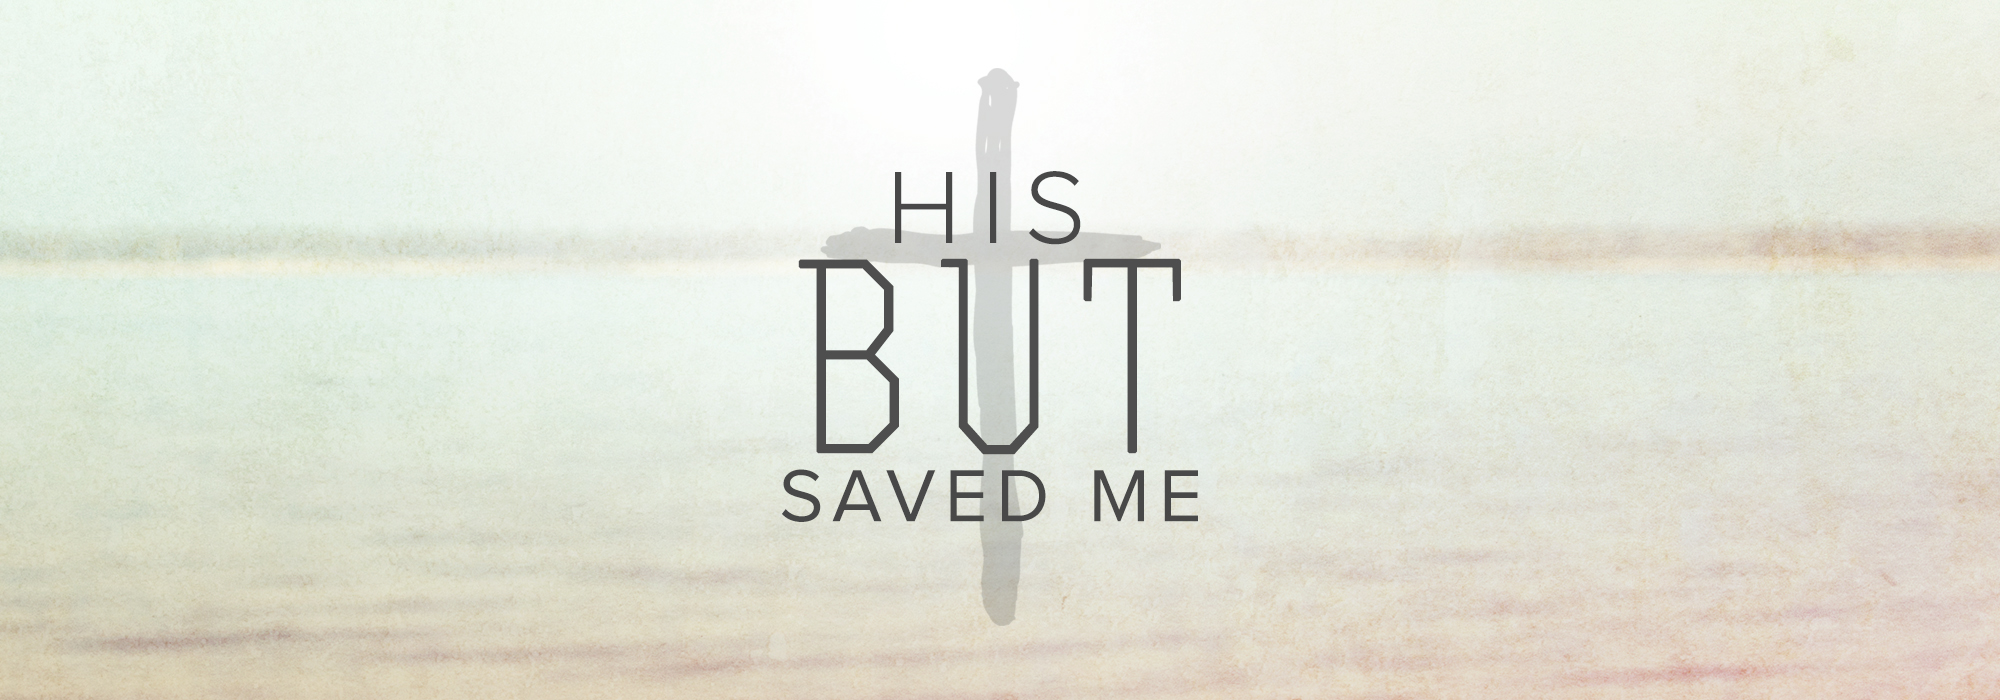 His BUT Saved Me